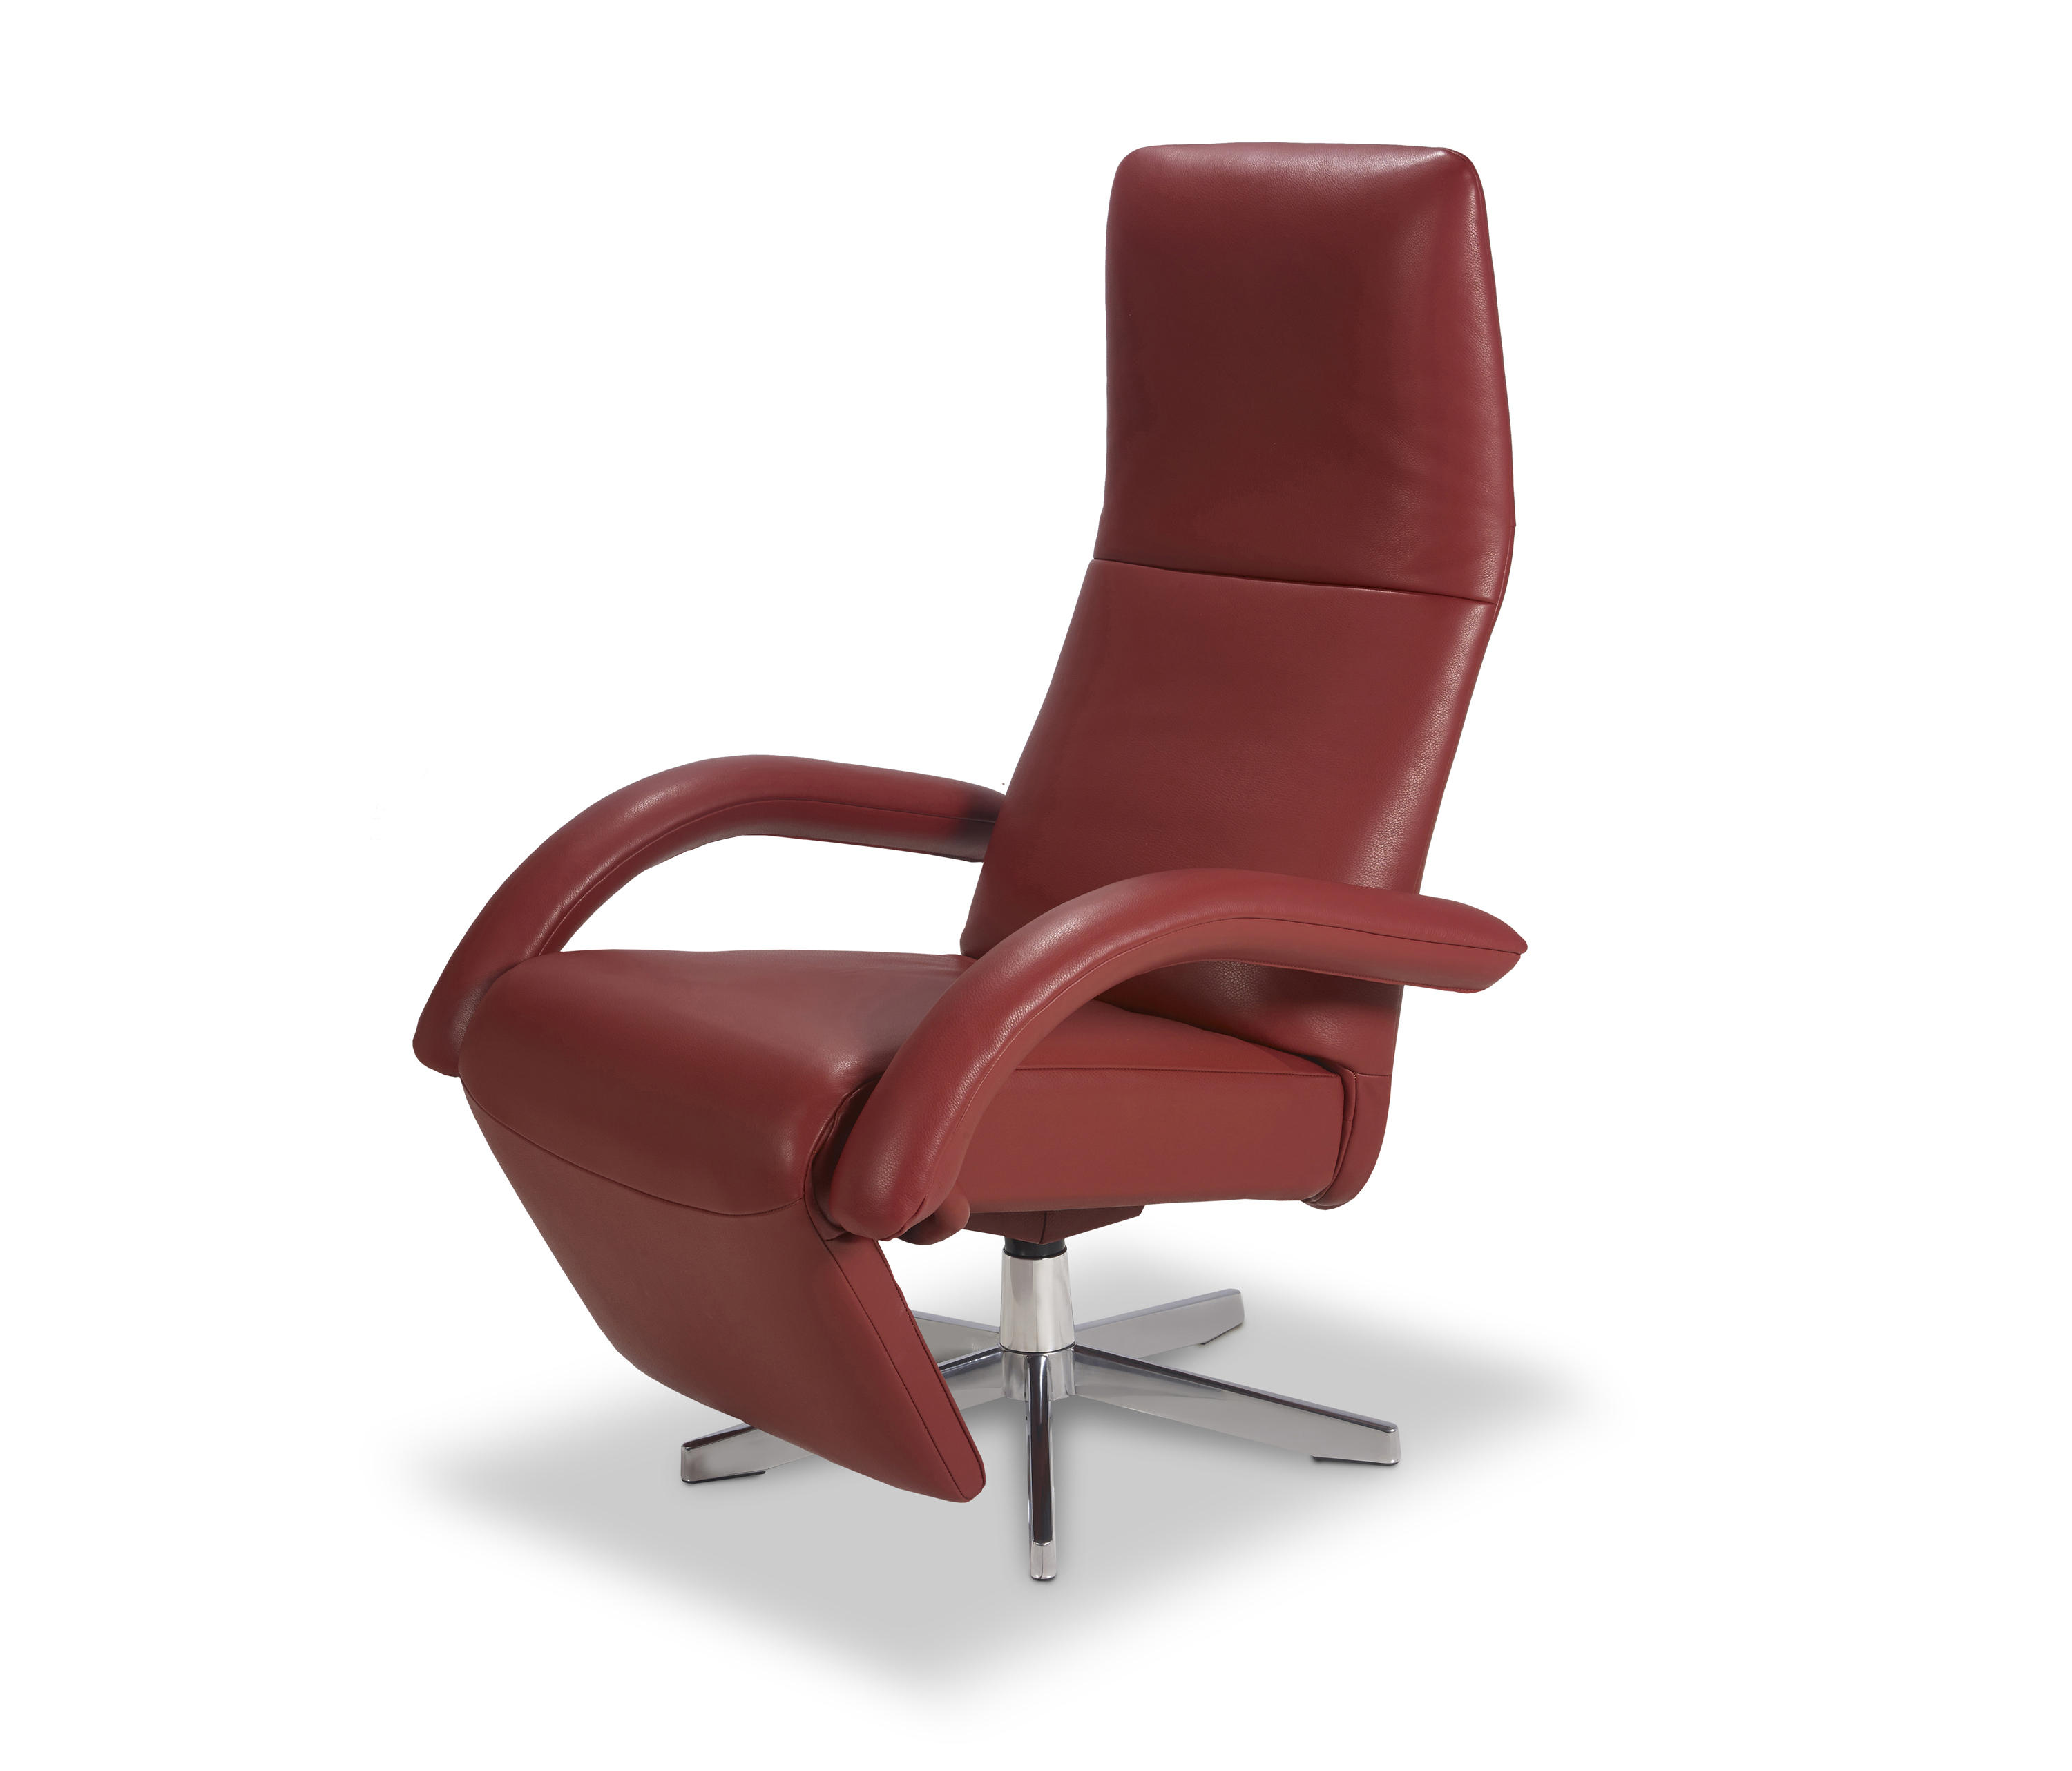 Maxi Sessel Yoga Armchairs From Jori Architonic